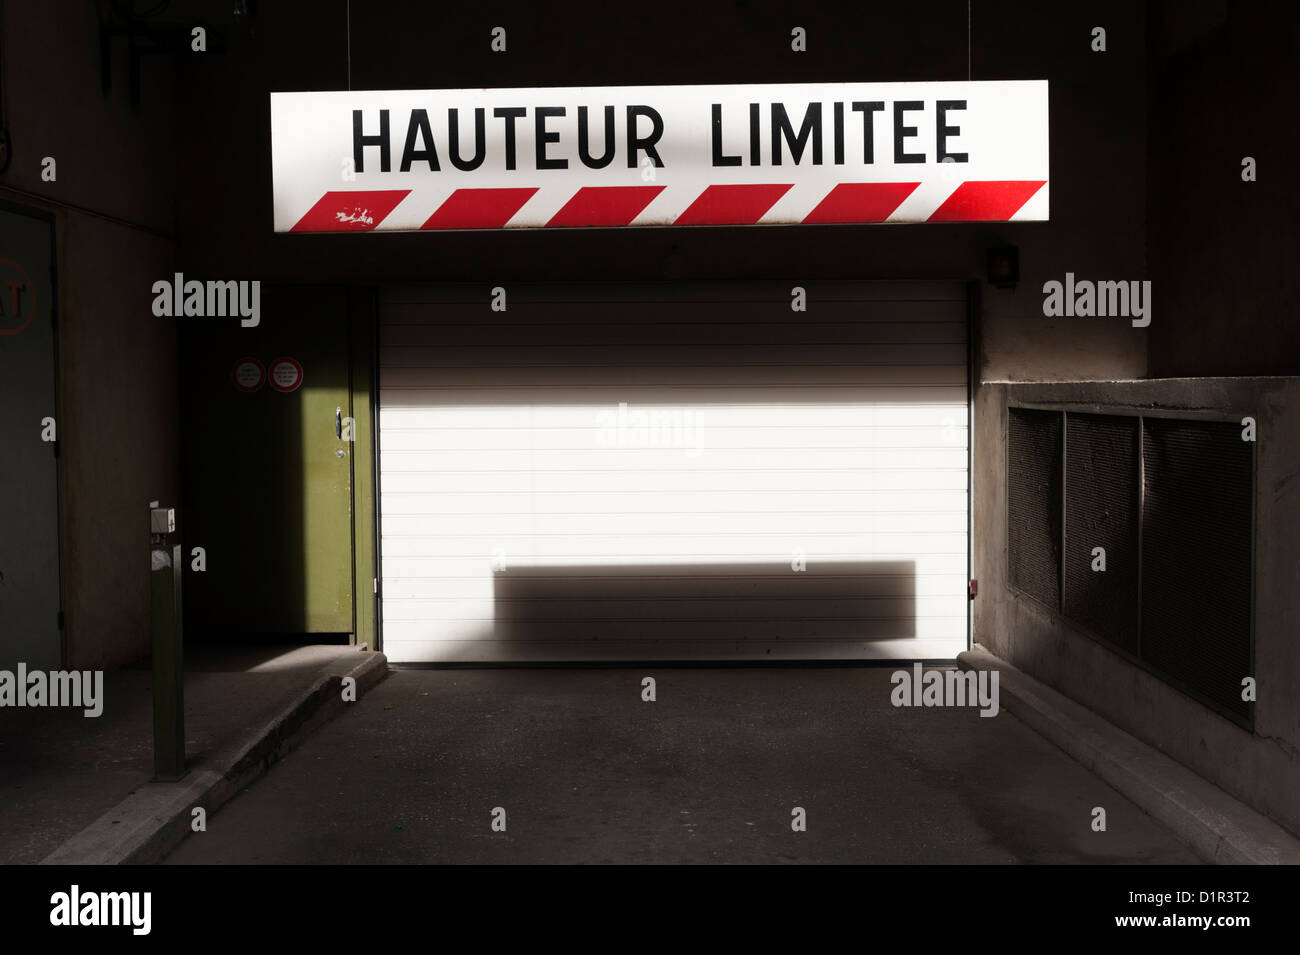 Paris, France: Height limit warning sign in French at the entrance to an underground car park - Stock Image